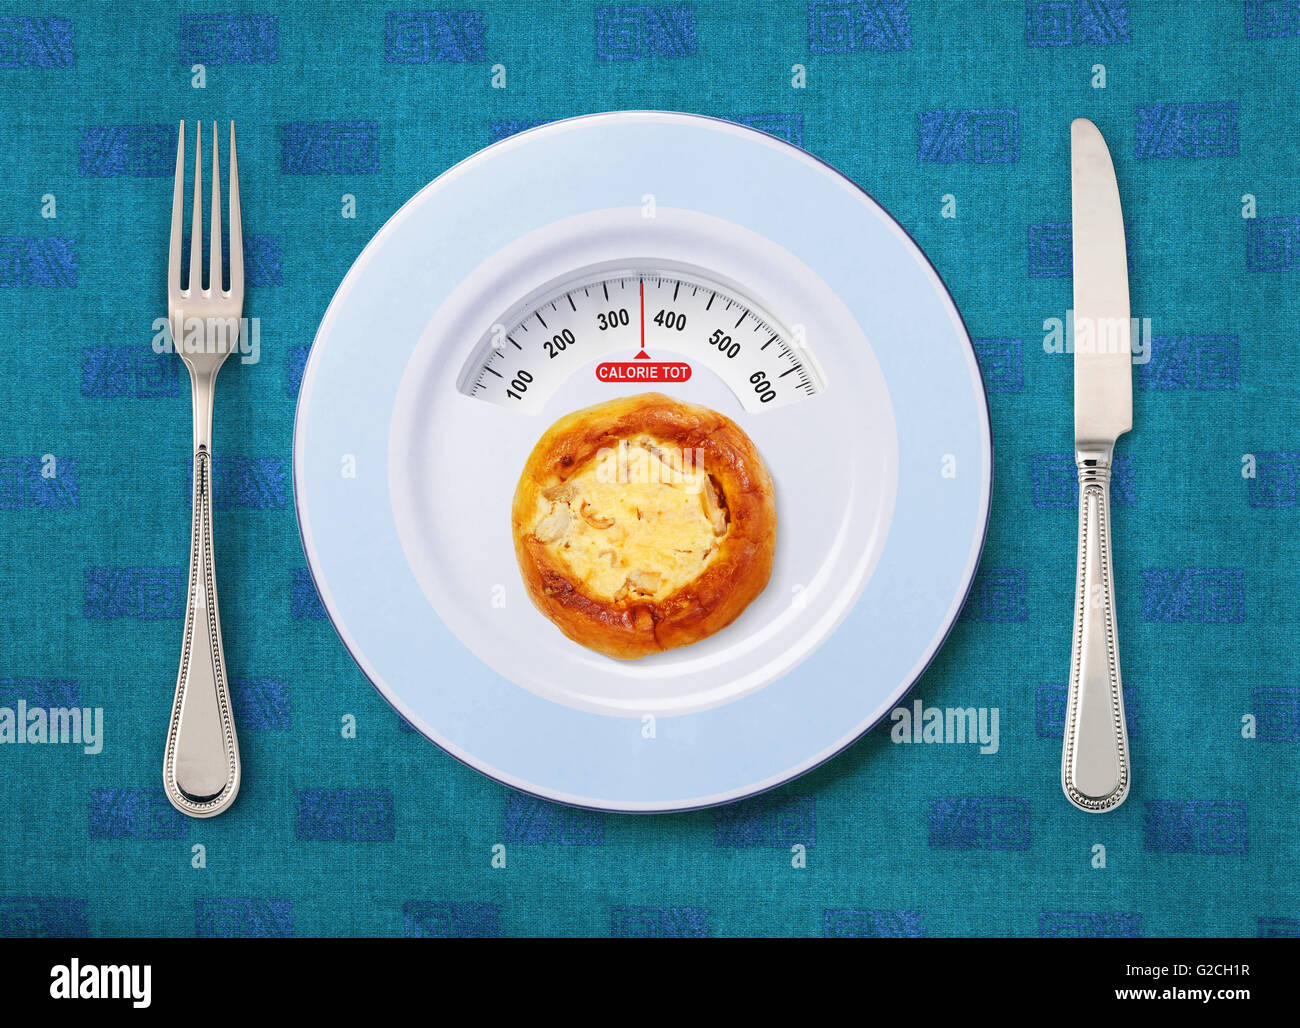 view of calorie tot in pizza that on white plate - Stock Image